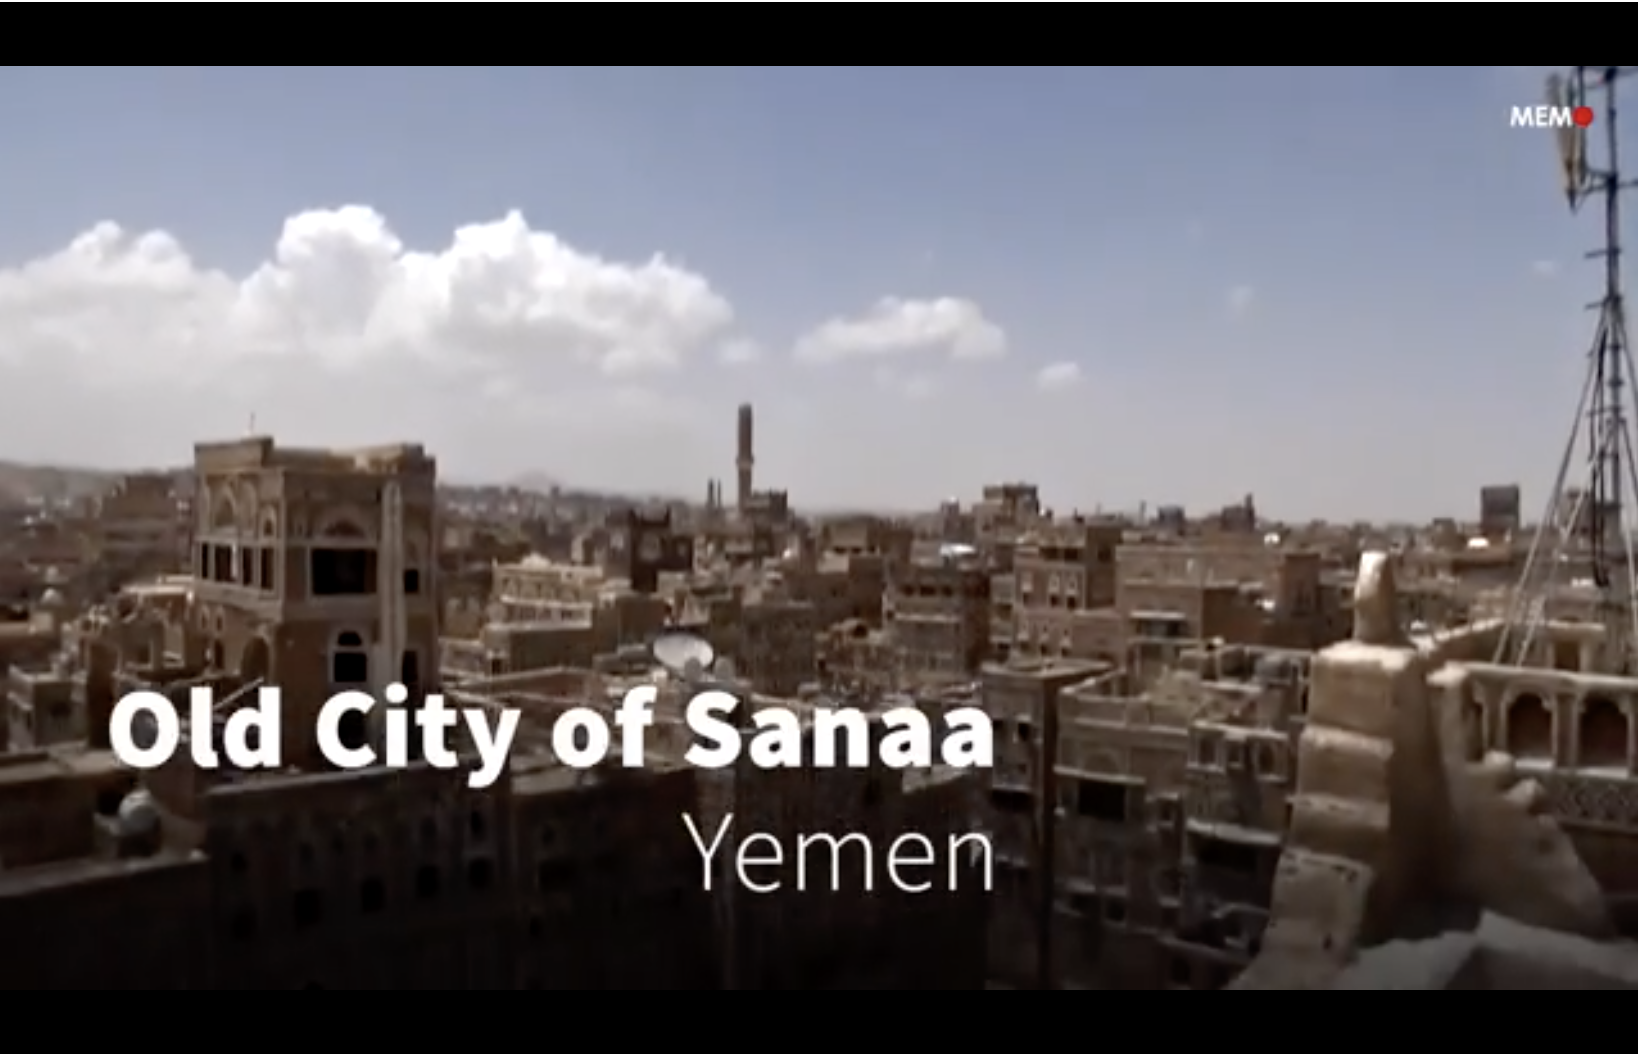 Discover The Old City Of Sanaa, Yemen